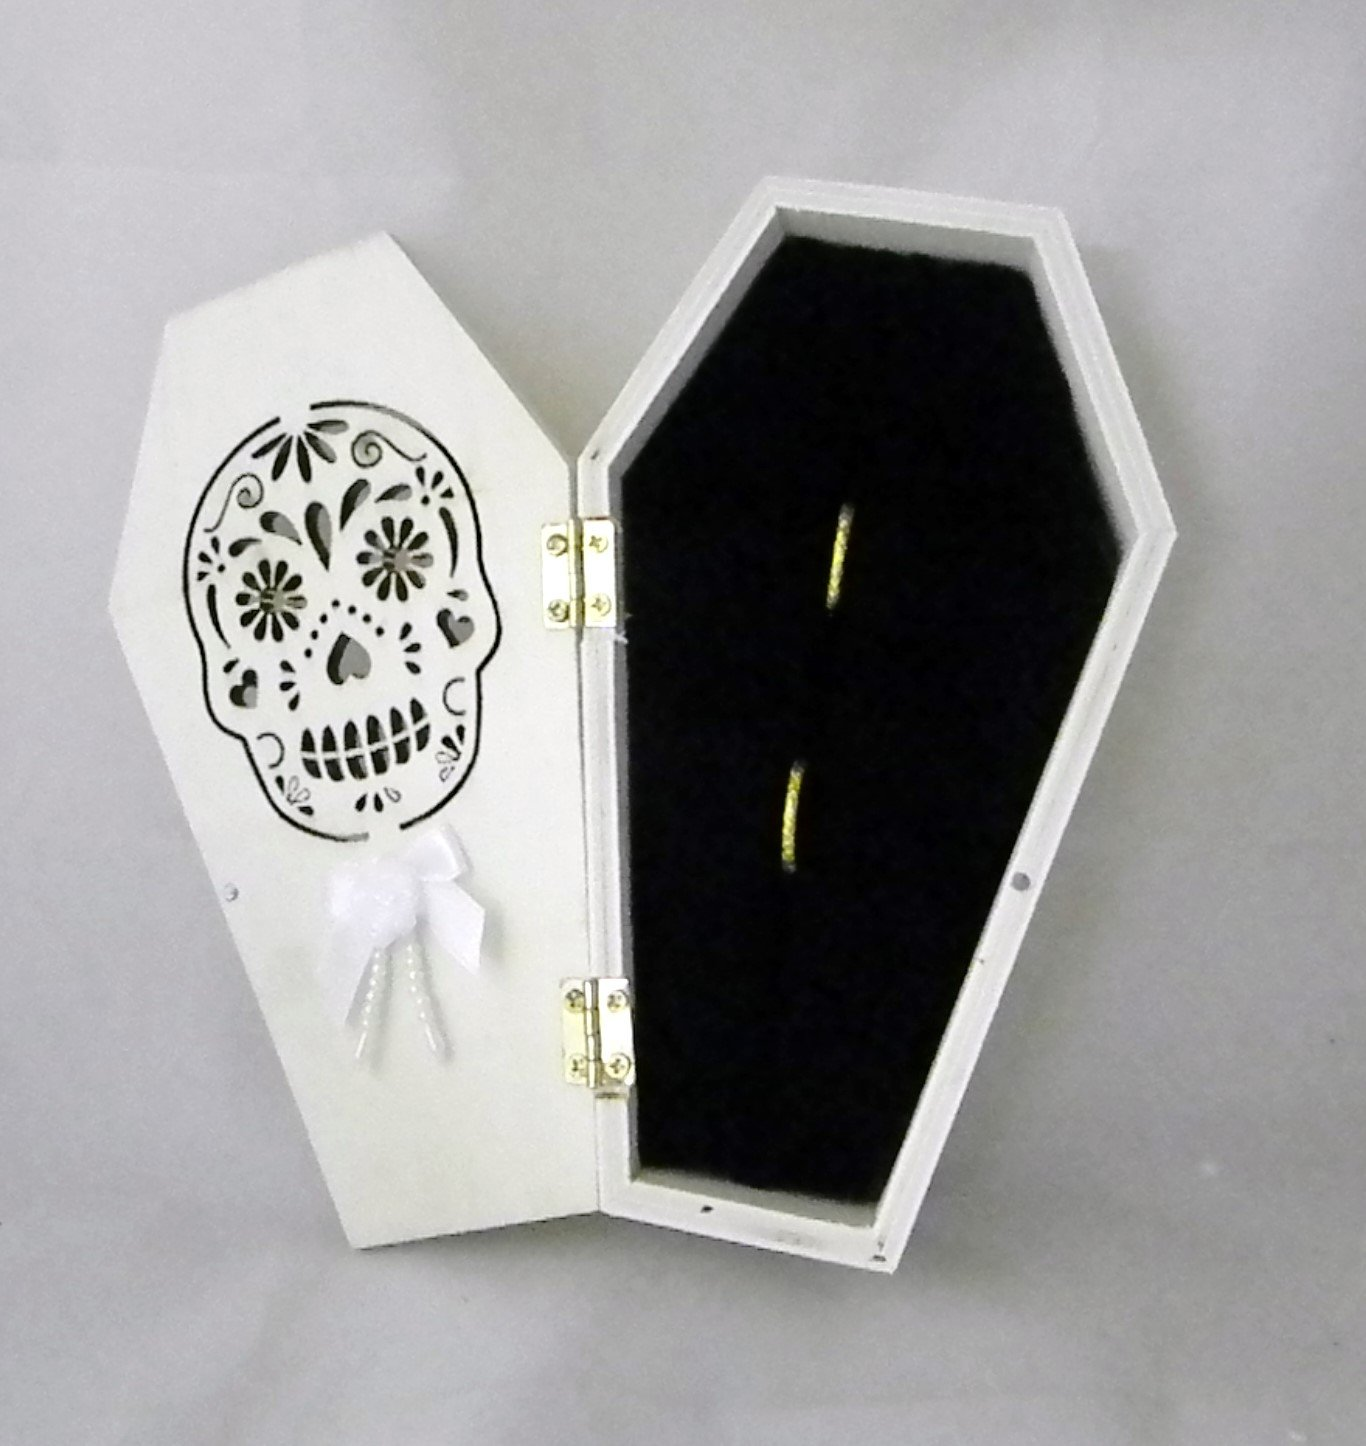 Wedding Ceremony Sugar Skull Gothic Coffin Tombstone ring bearer pillow Box by Custom Design Wedding Supplies by Suzanne